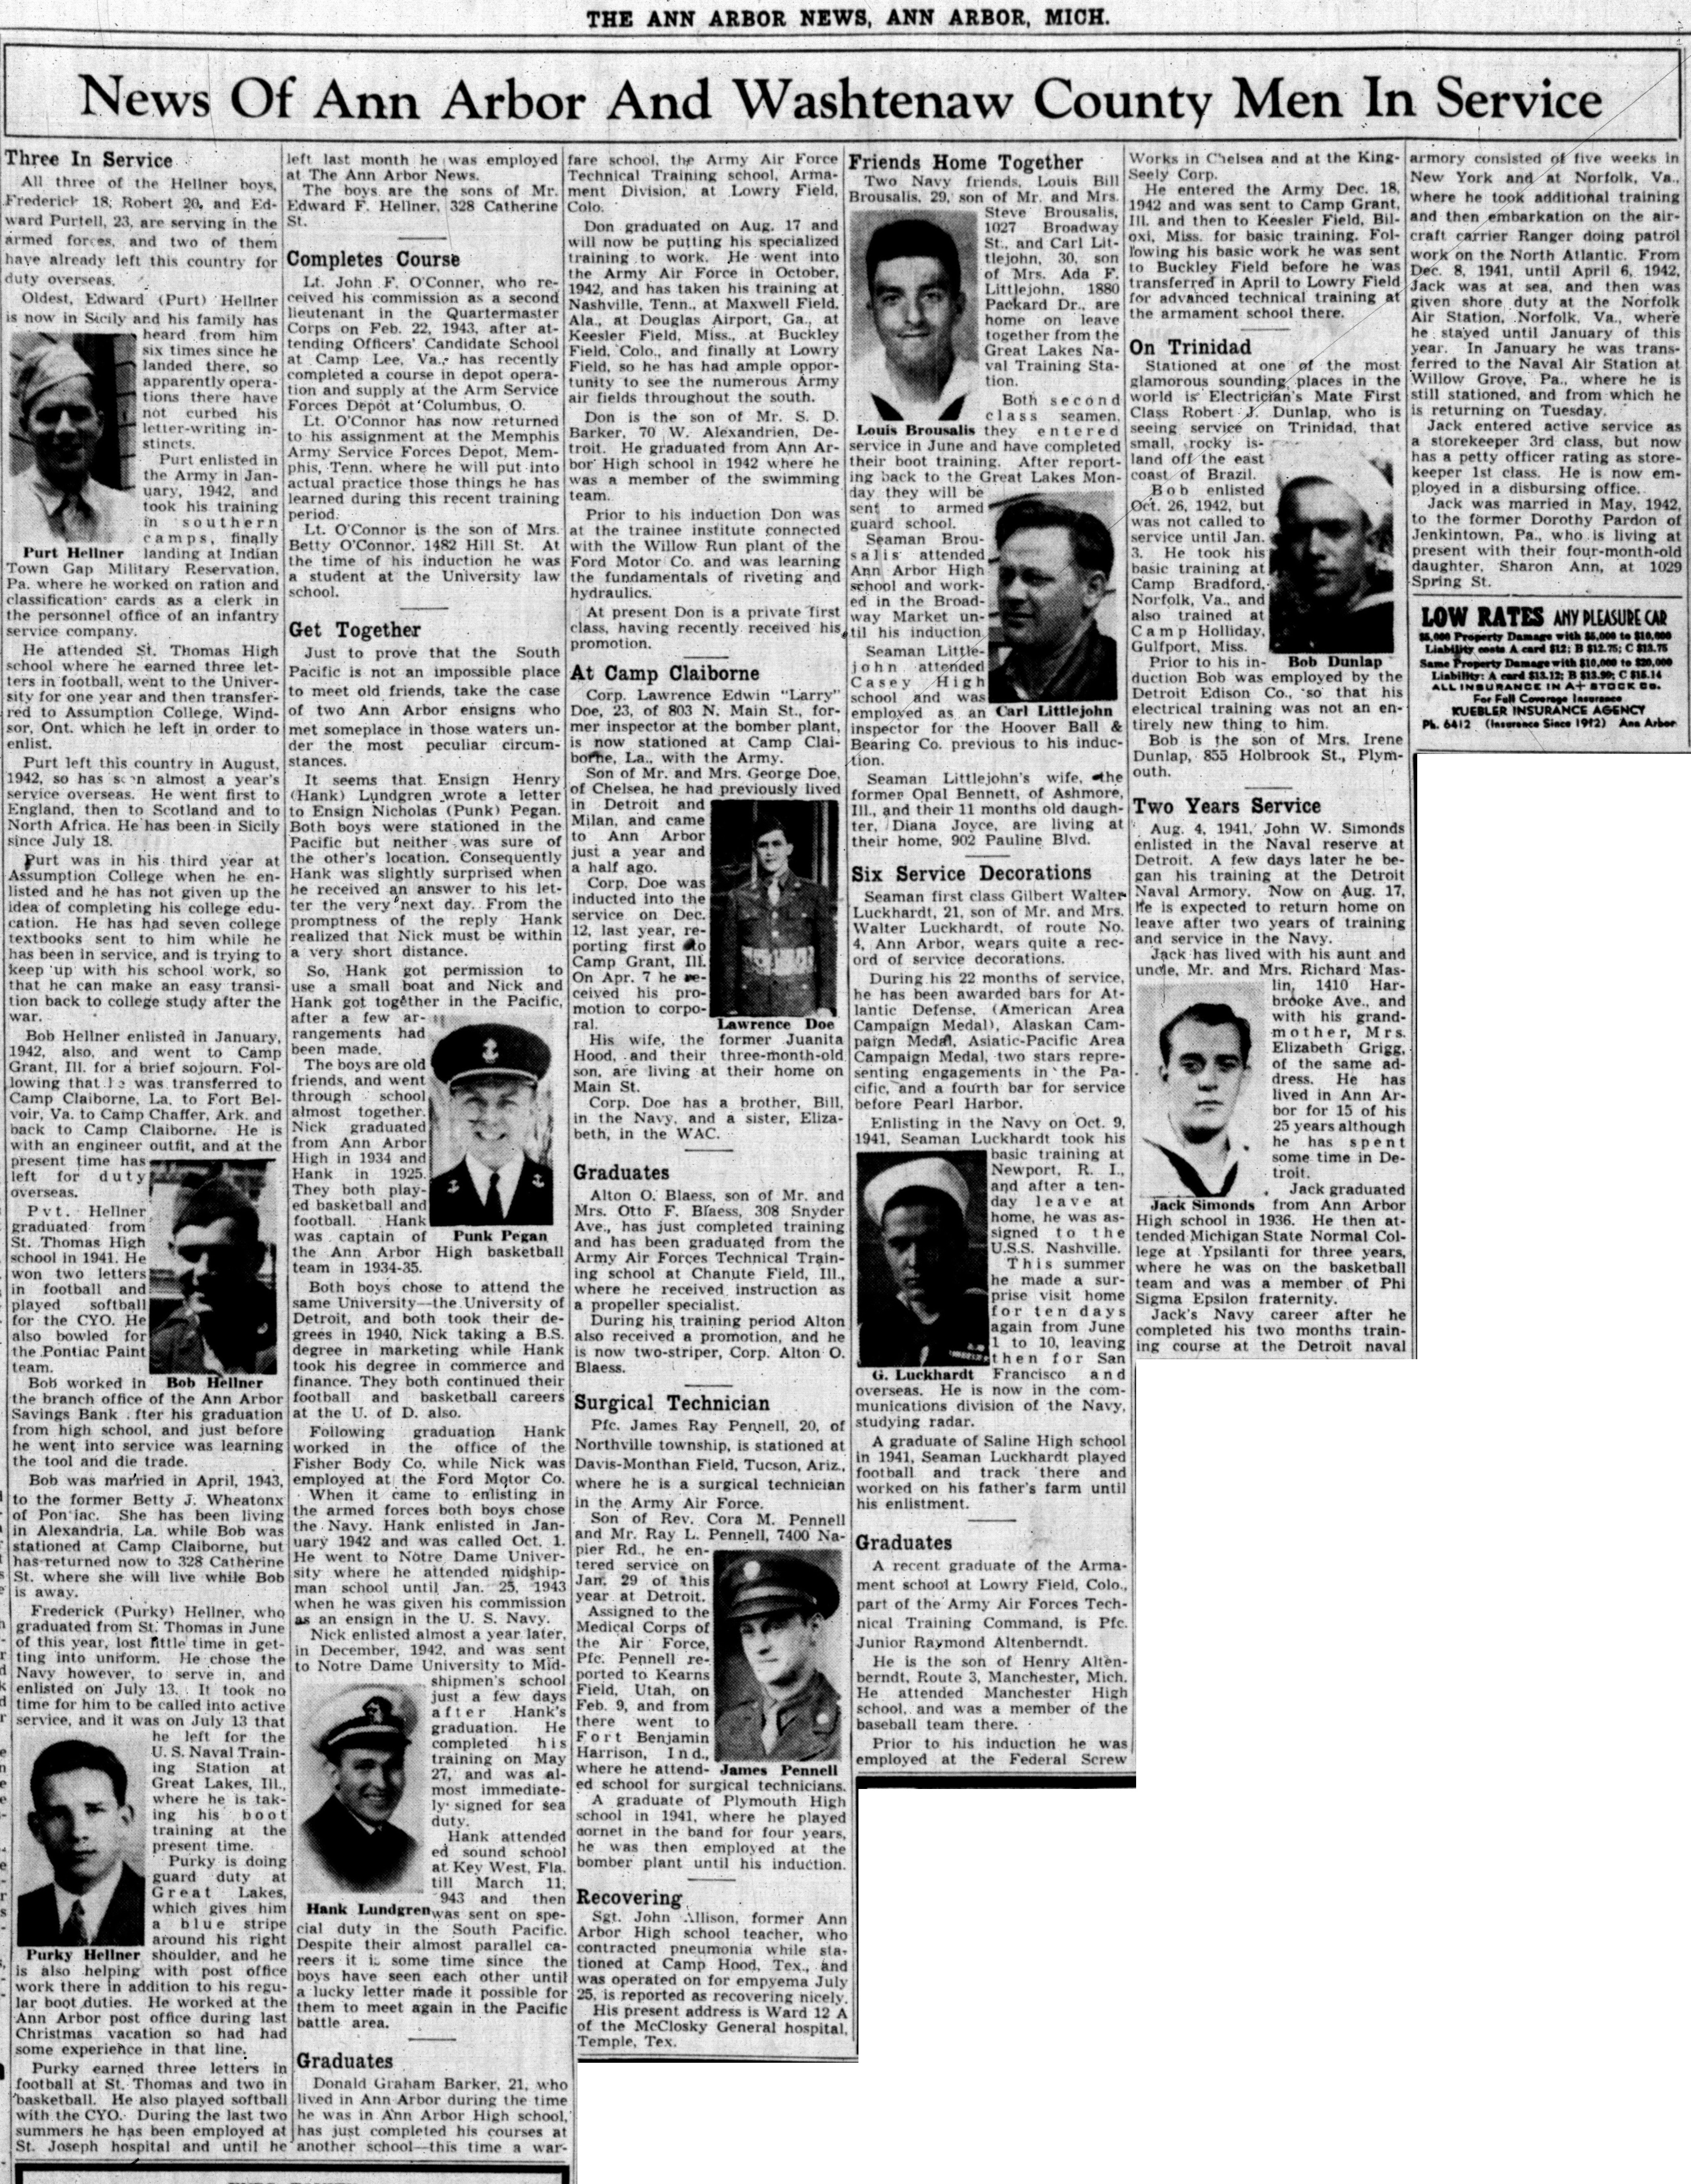 News Of Ann Arbor And Washtenaw County Men In Service: August 17, 1943 image